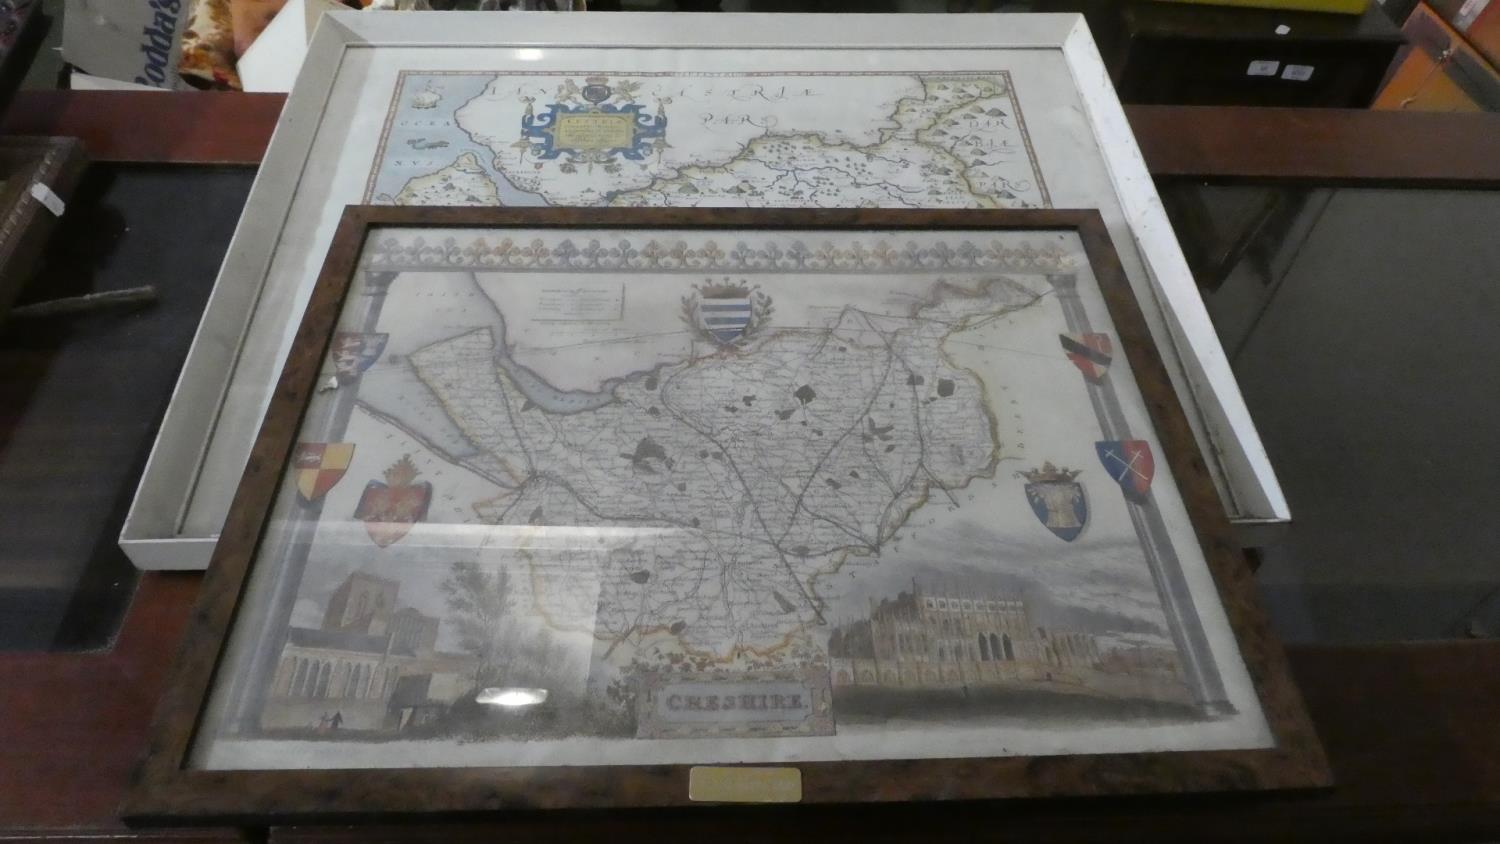 Lot 286 - A Framed British Museum Copy of Saxton's Map of Cheshire 1577 and a Similar Print